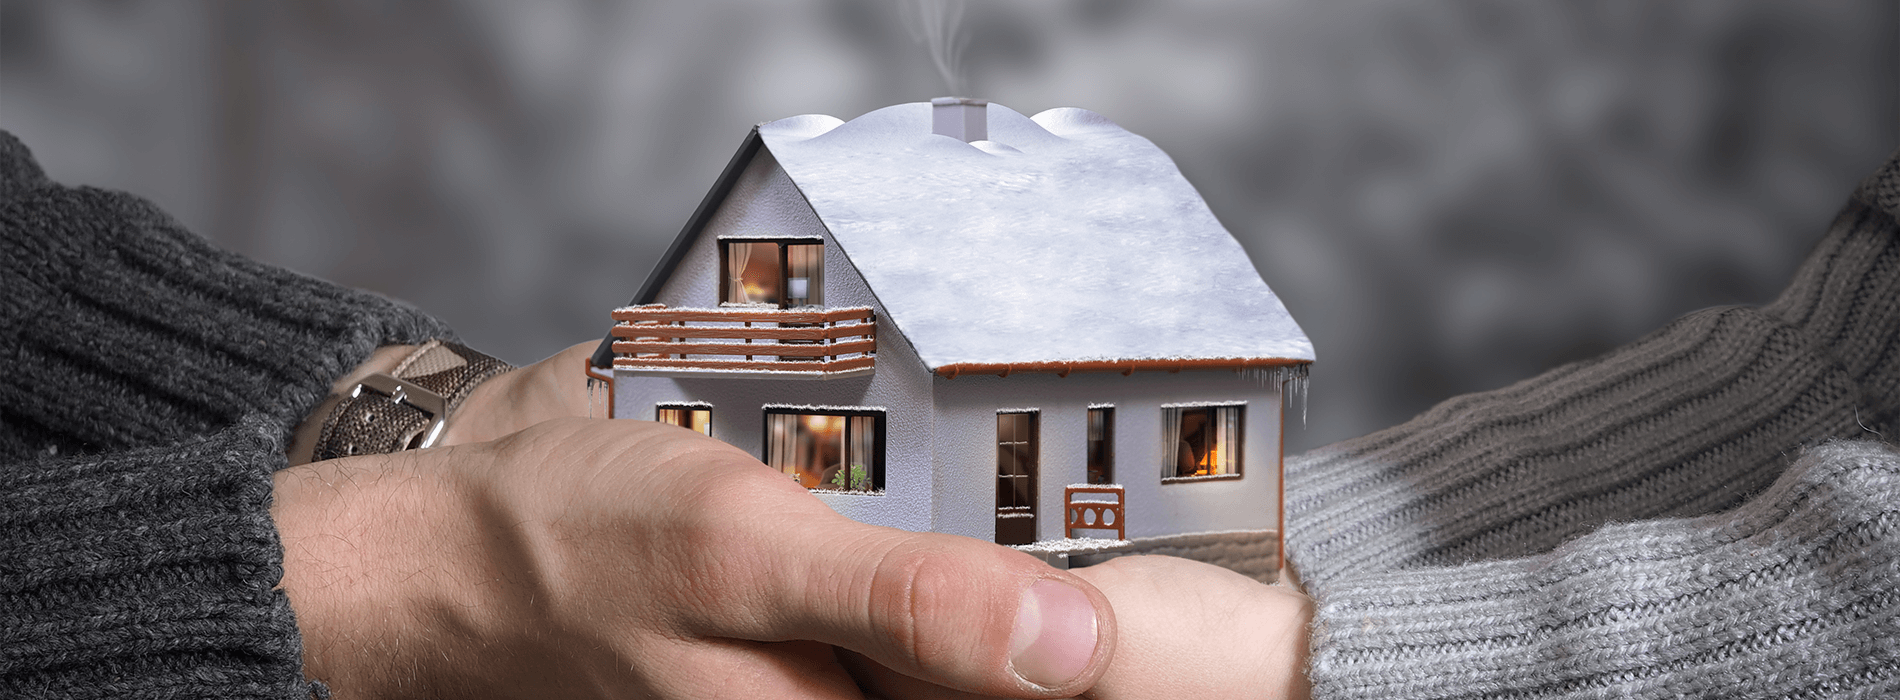 Why a short-term loan could help this winter?